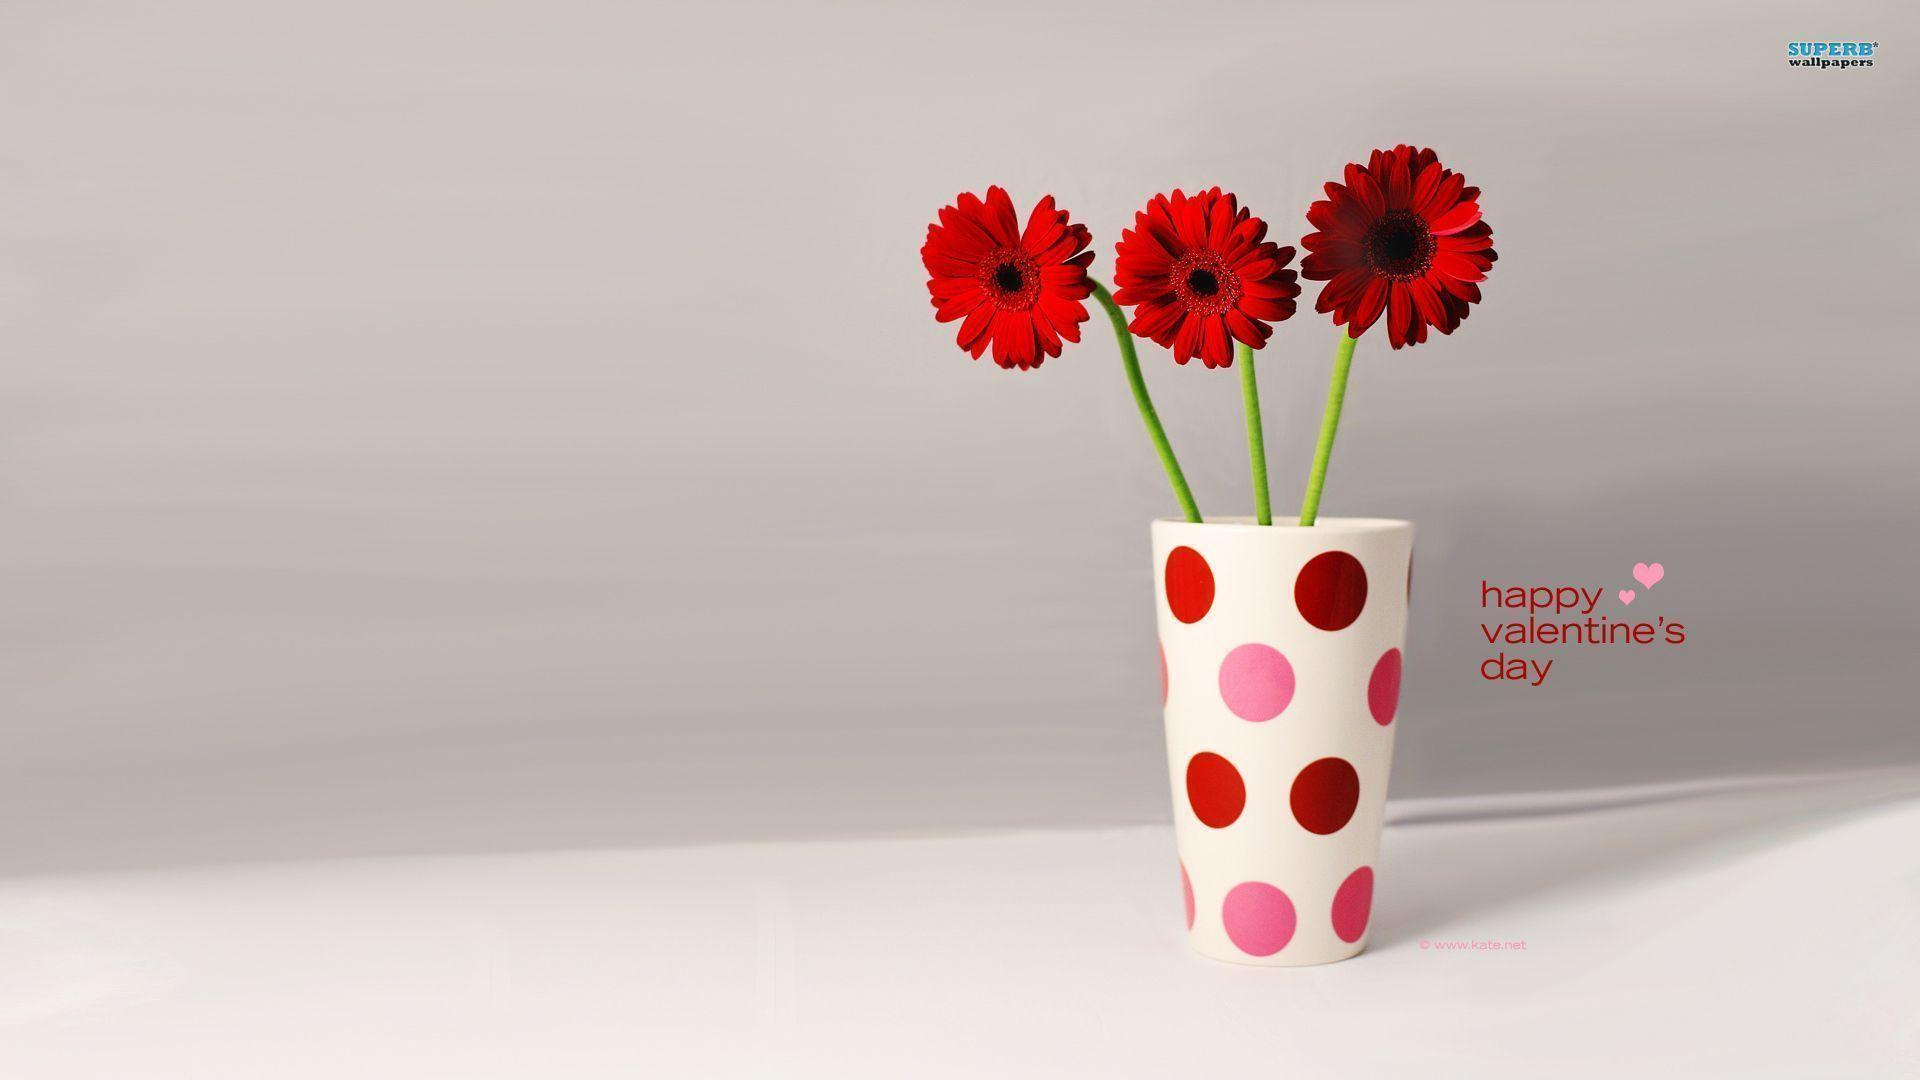 wallpapers valentines day 2015 – 1920×1080 High Definition ...